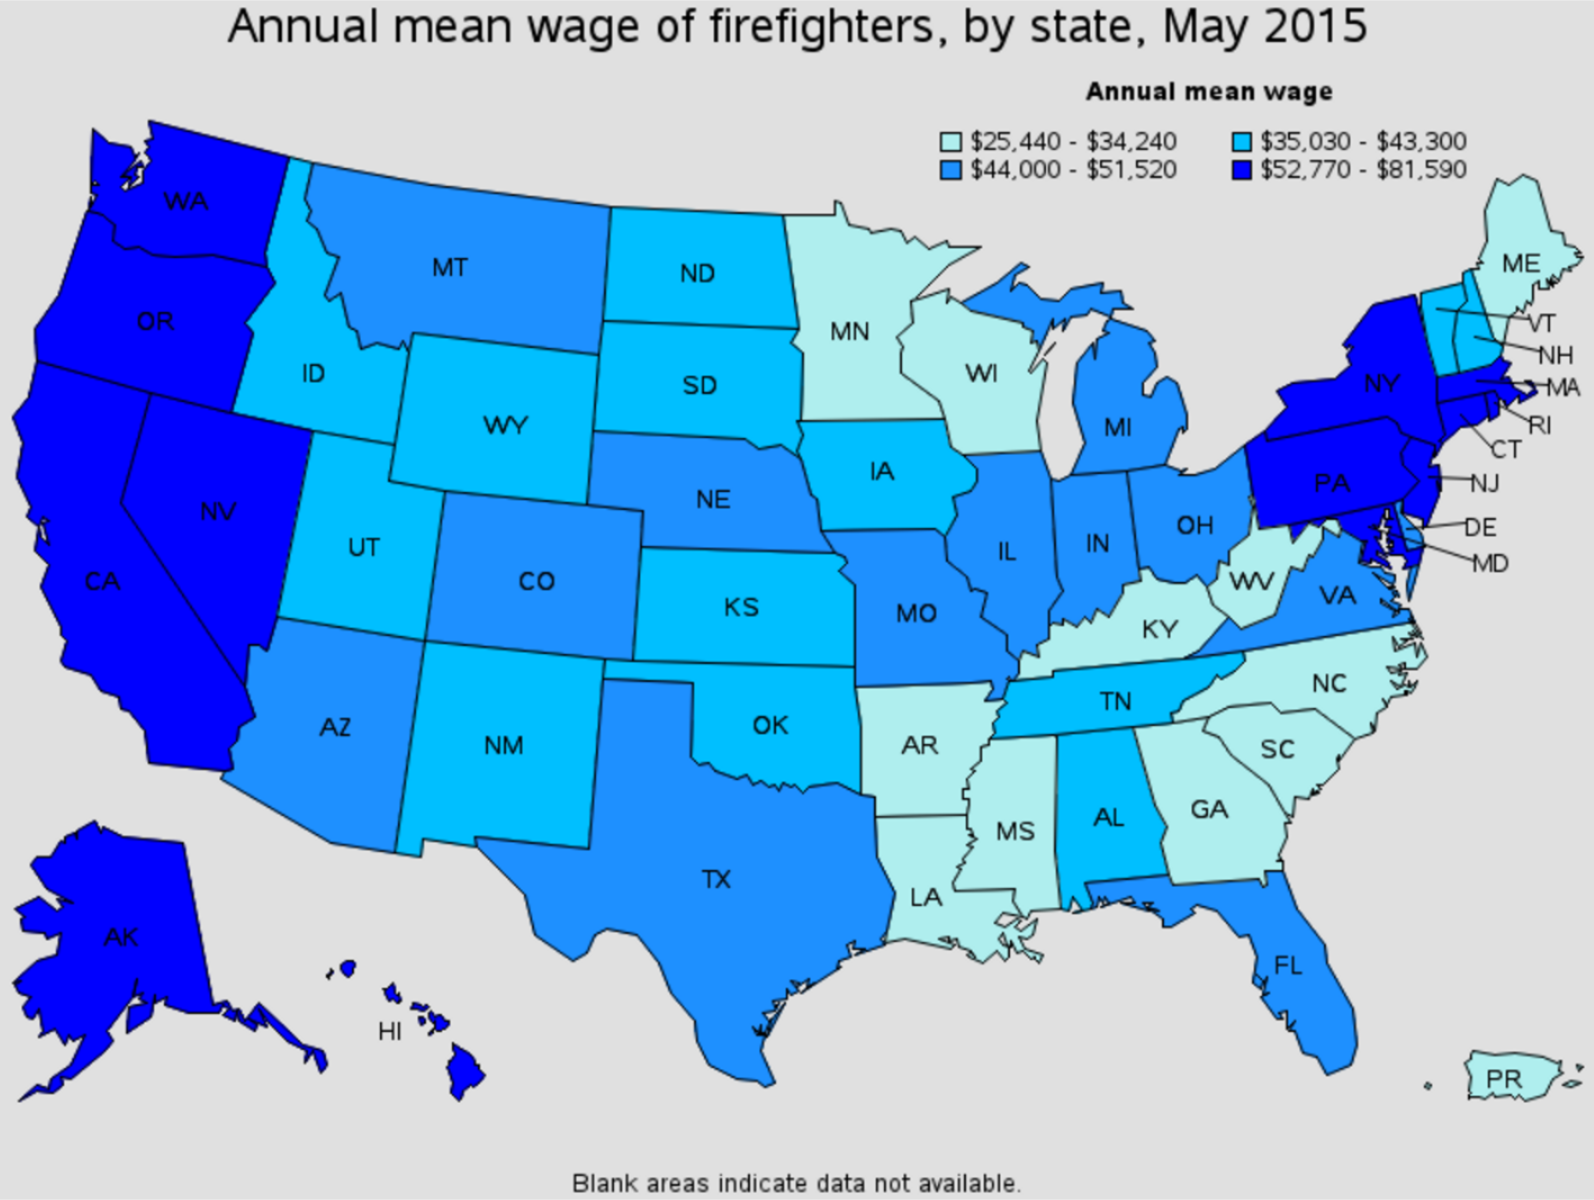 firefighter average salary by state Stamford Connecticut